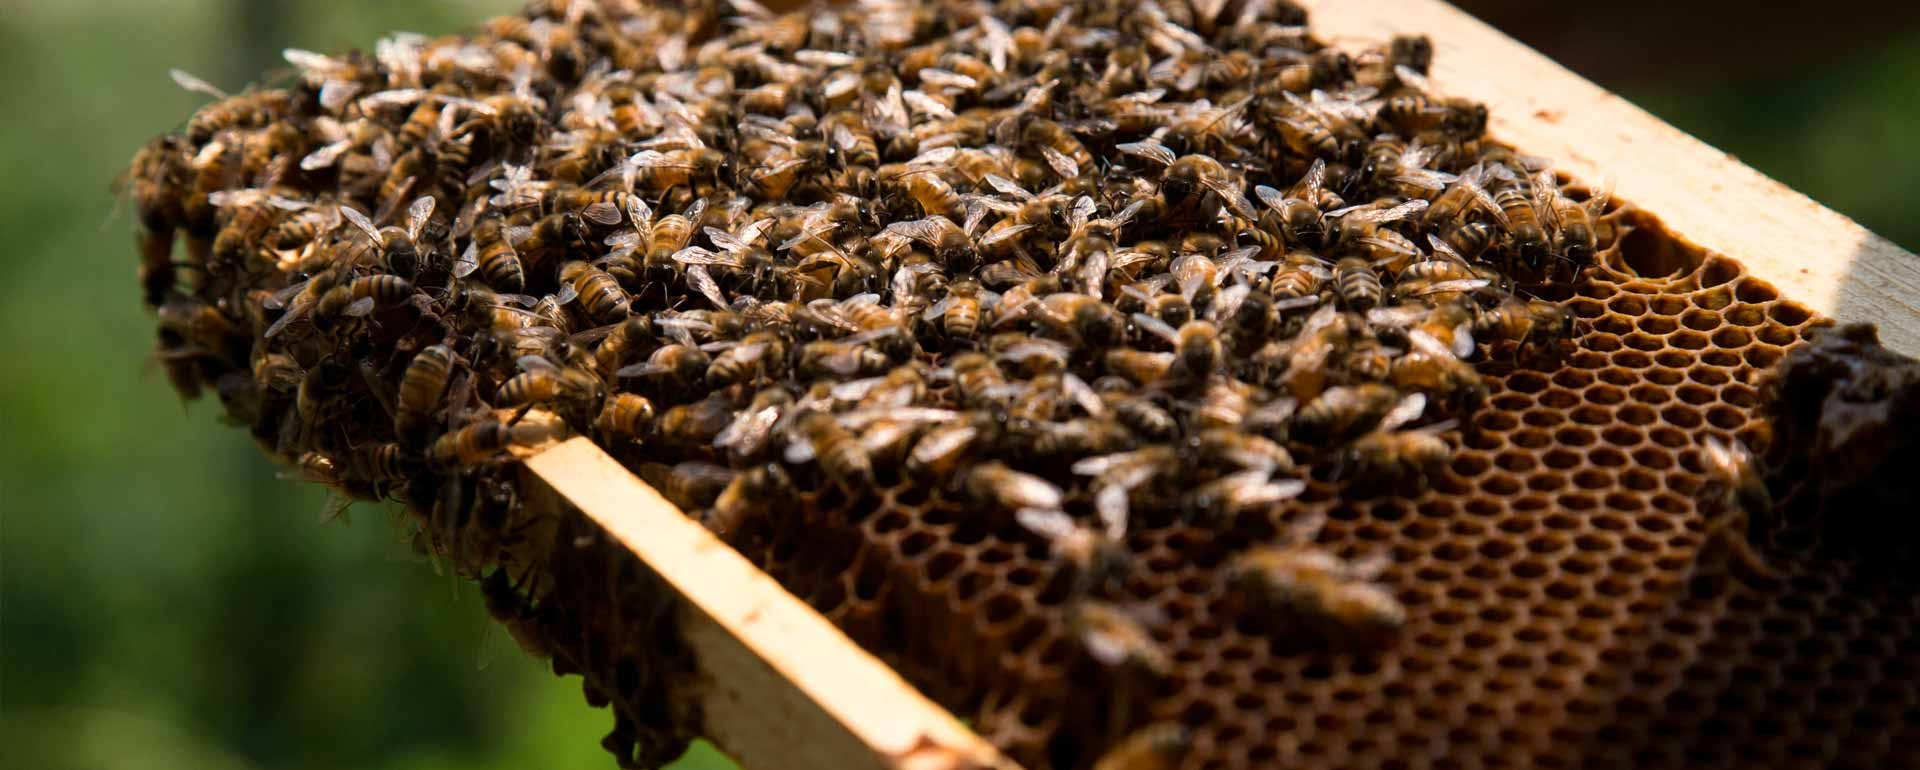 Bee Hives for Sale | Beekeeping Supplies | Busy Bees 'n' More